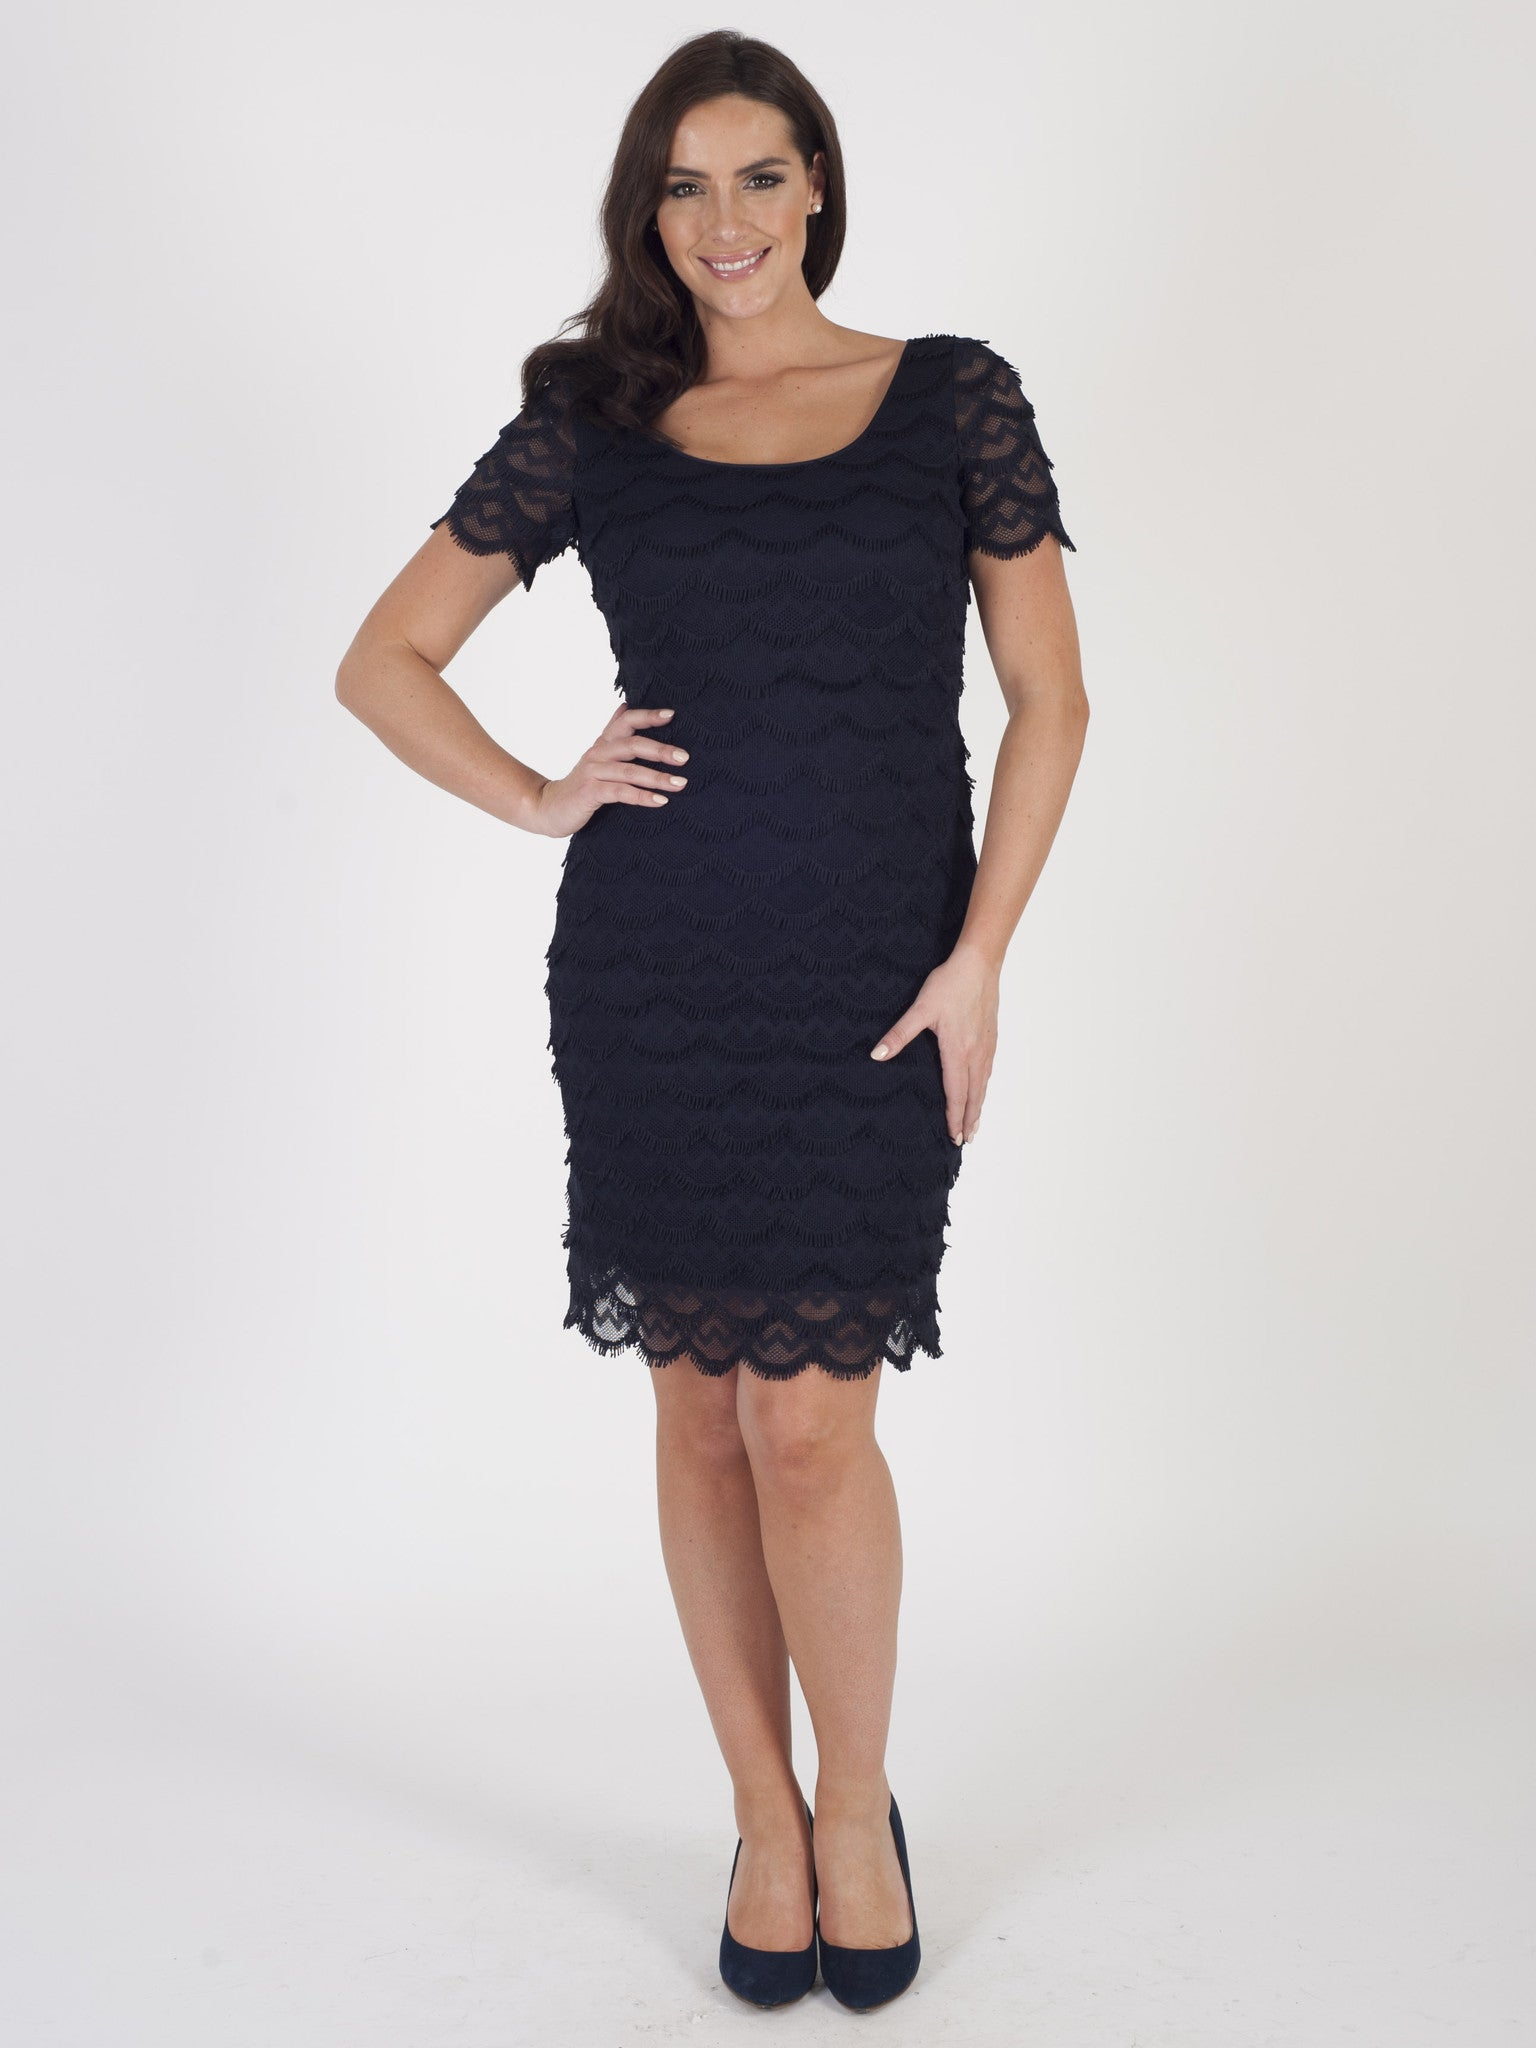 Plus Size Mother Of The Bride Outfits And Dresses Plus